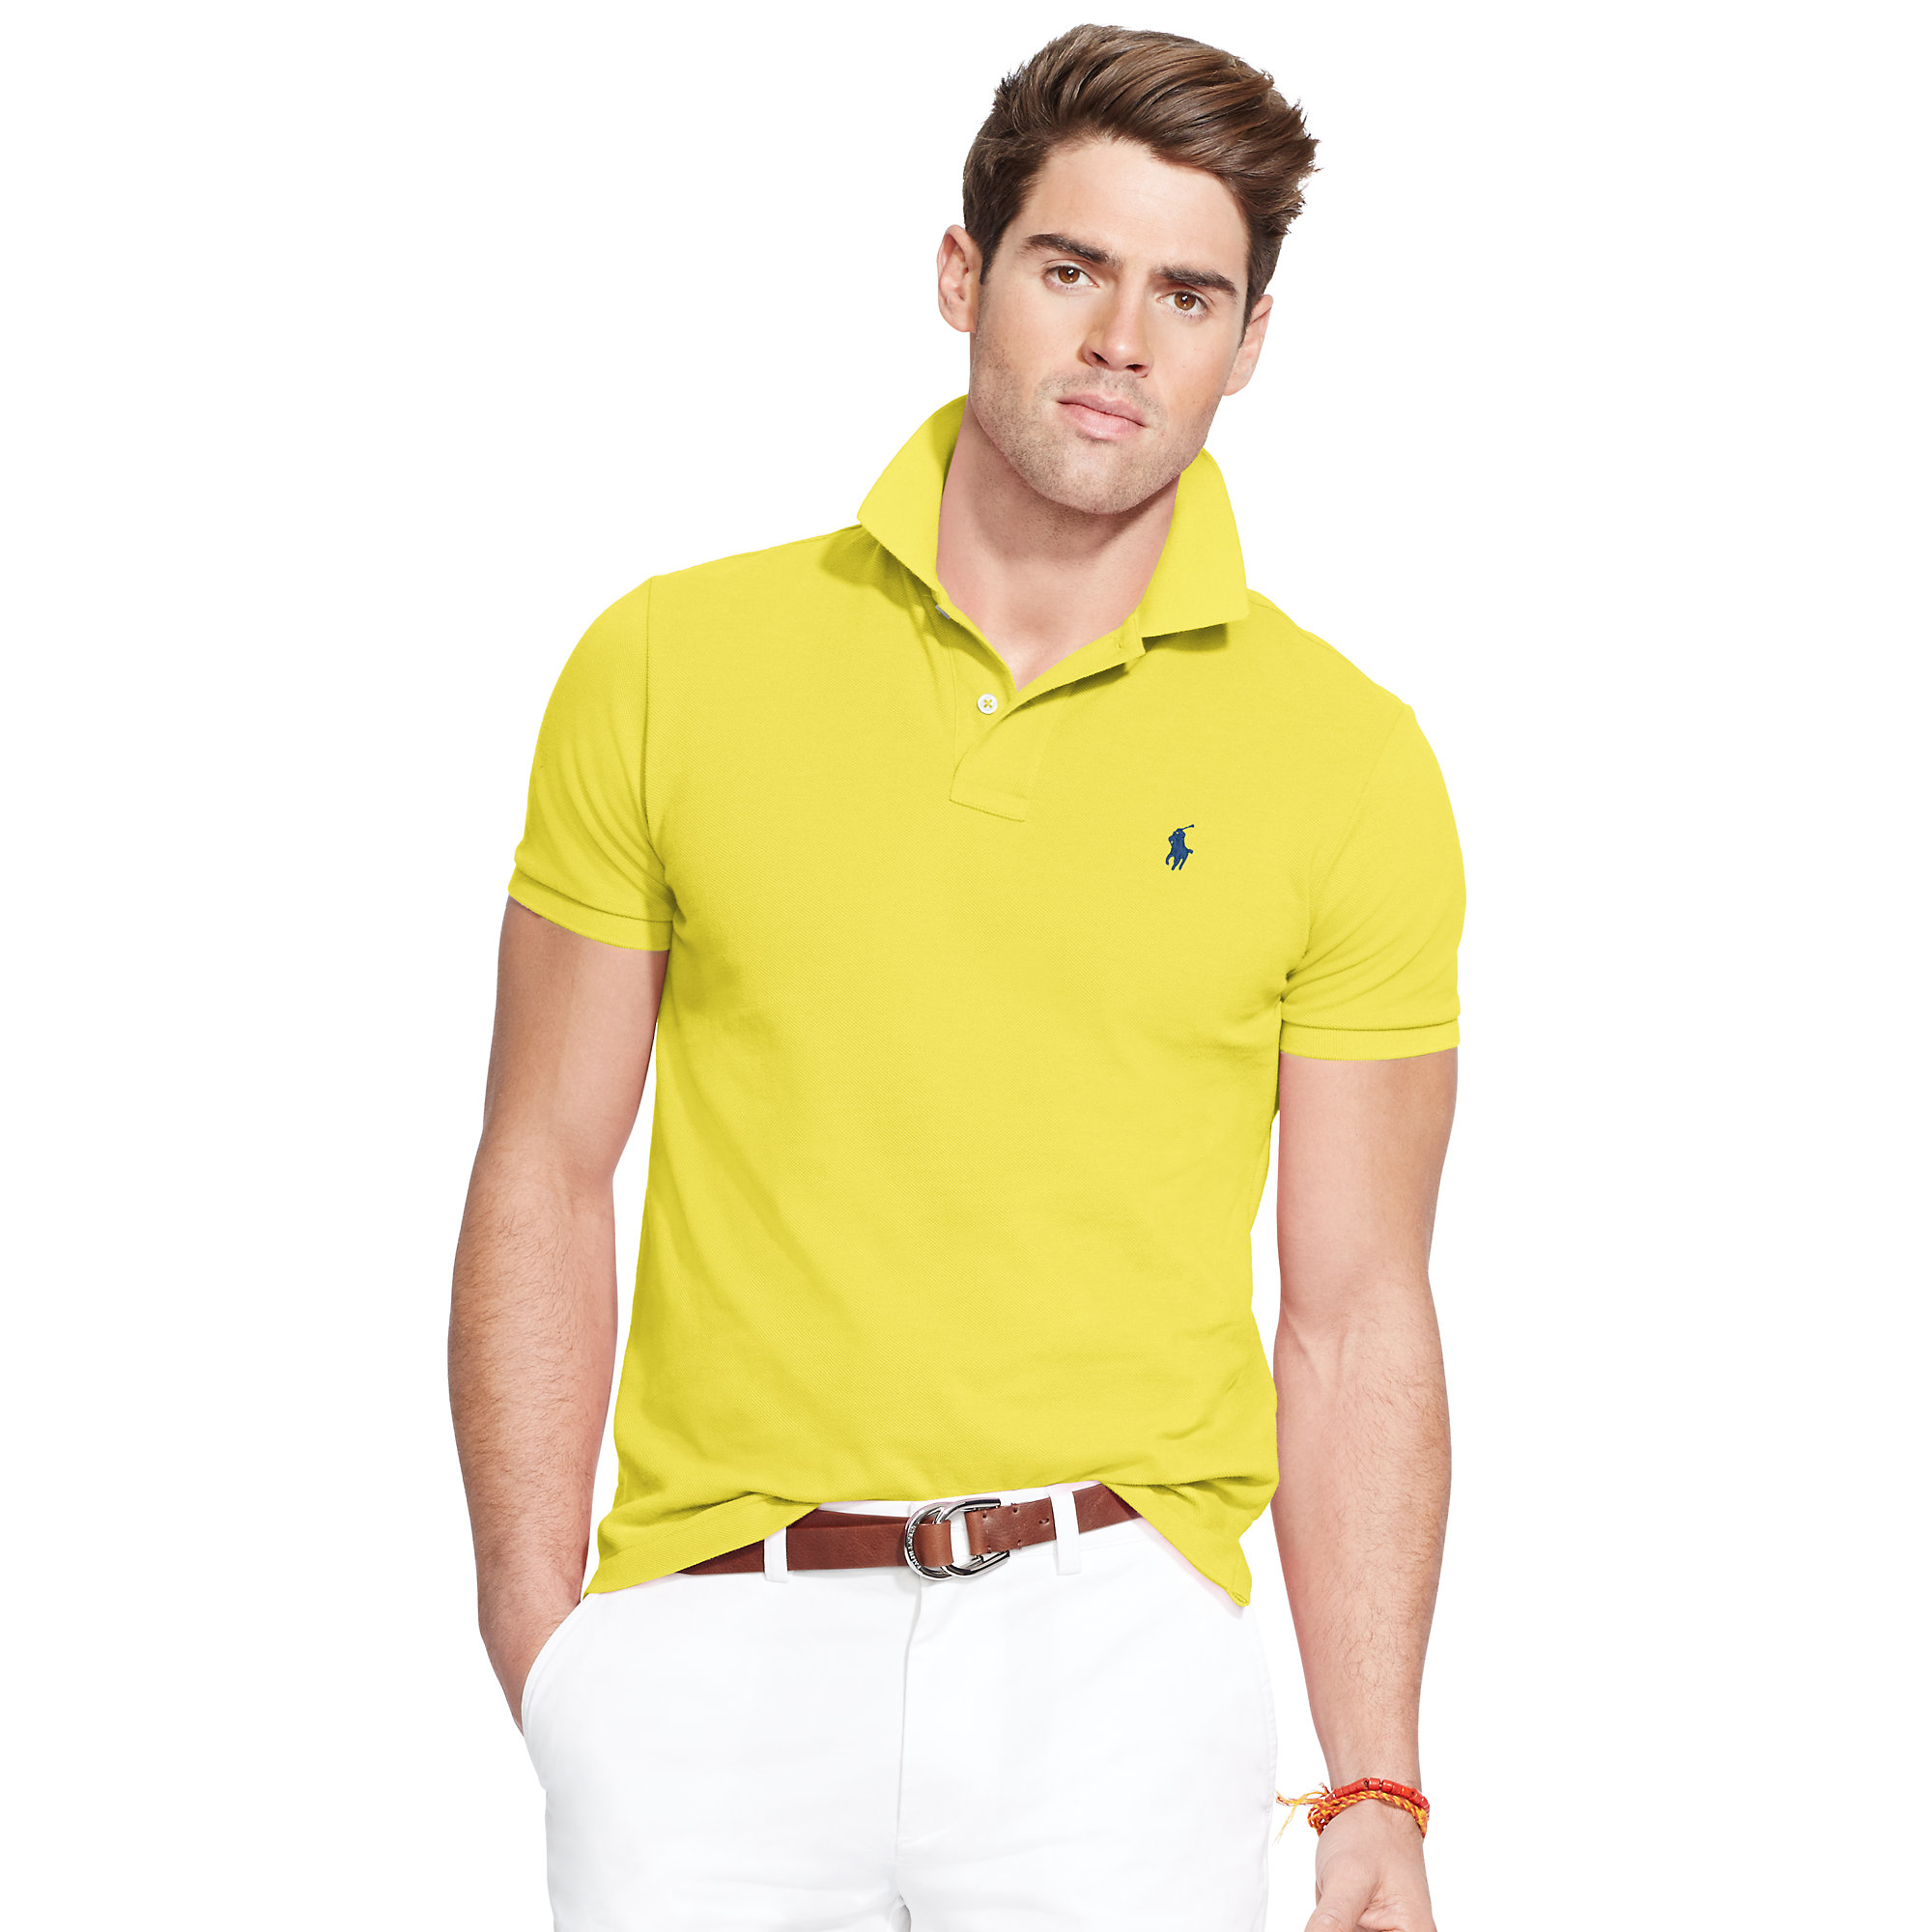 8031f4ff3a850 Lyst - Polo Ralph Lauren Classic-fit Mesh Polo Shirt in Yellow for Men